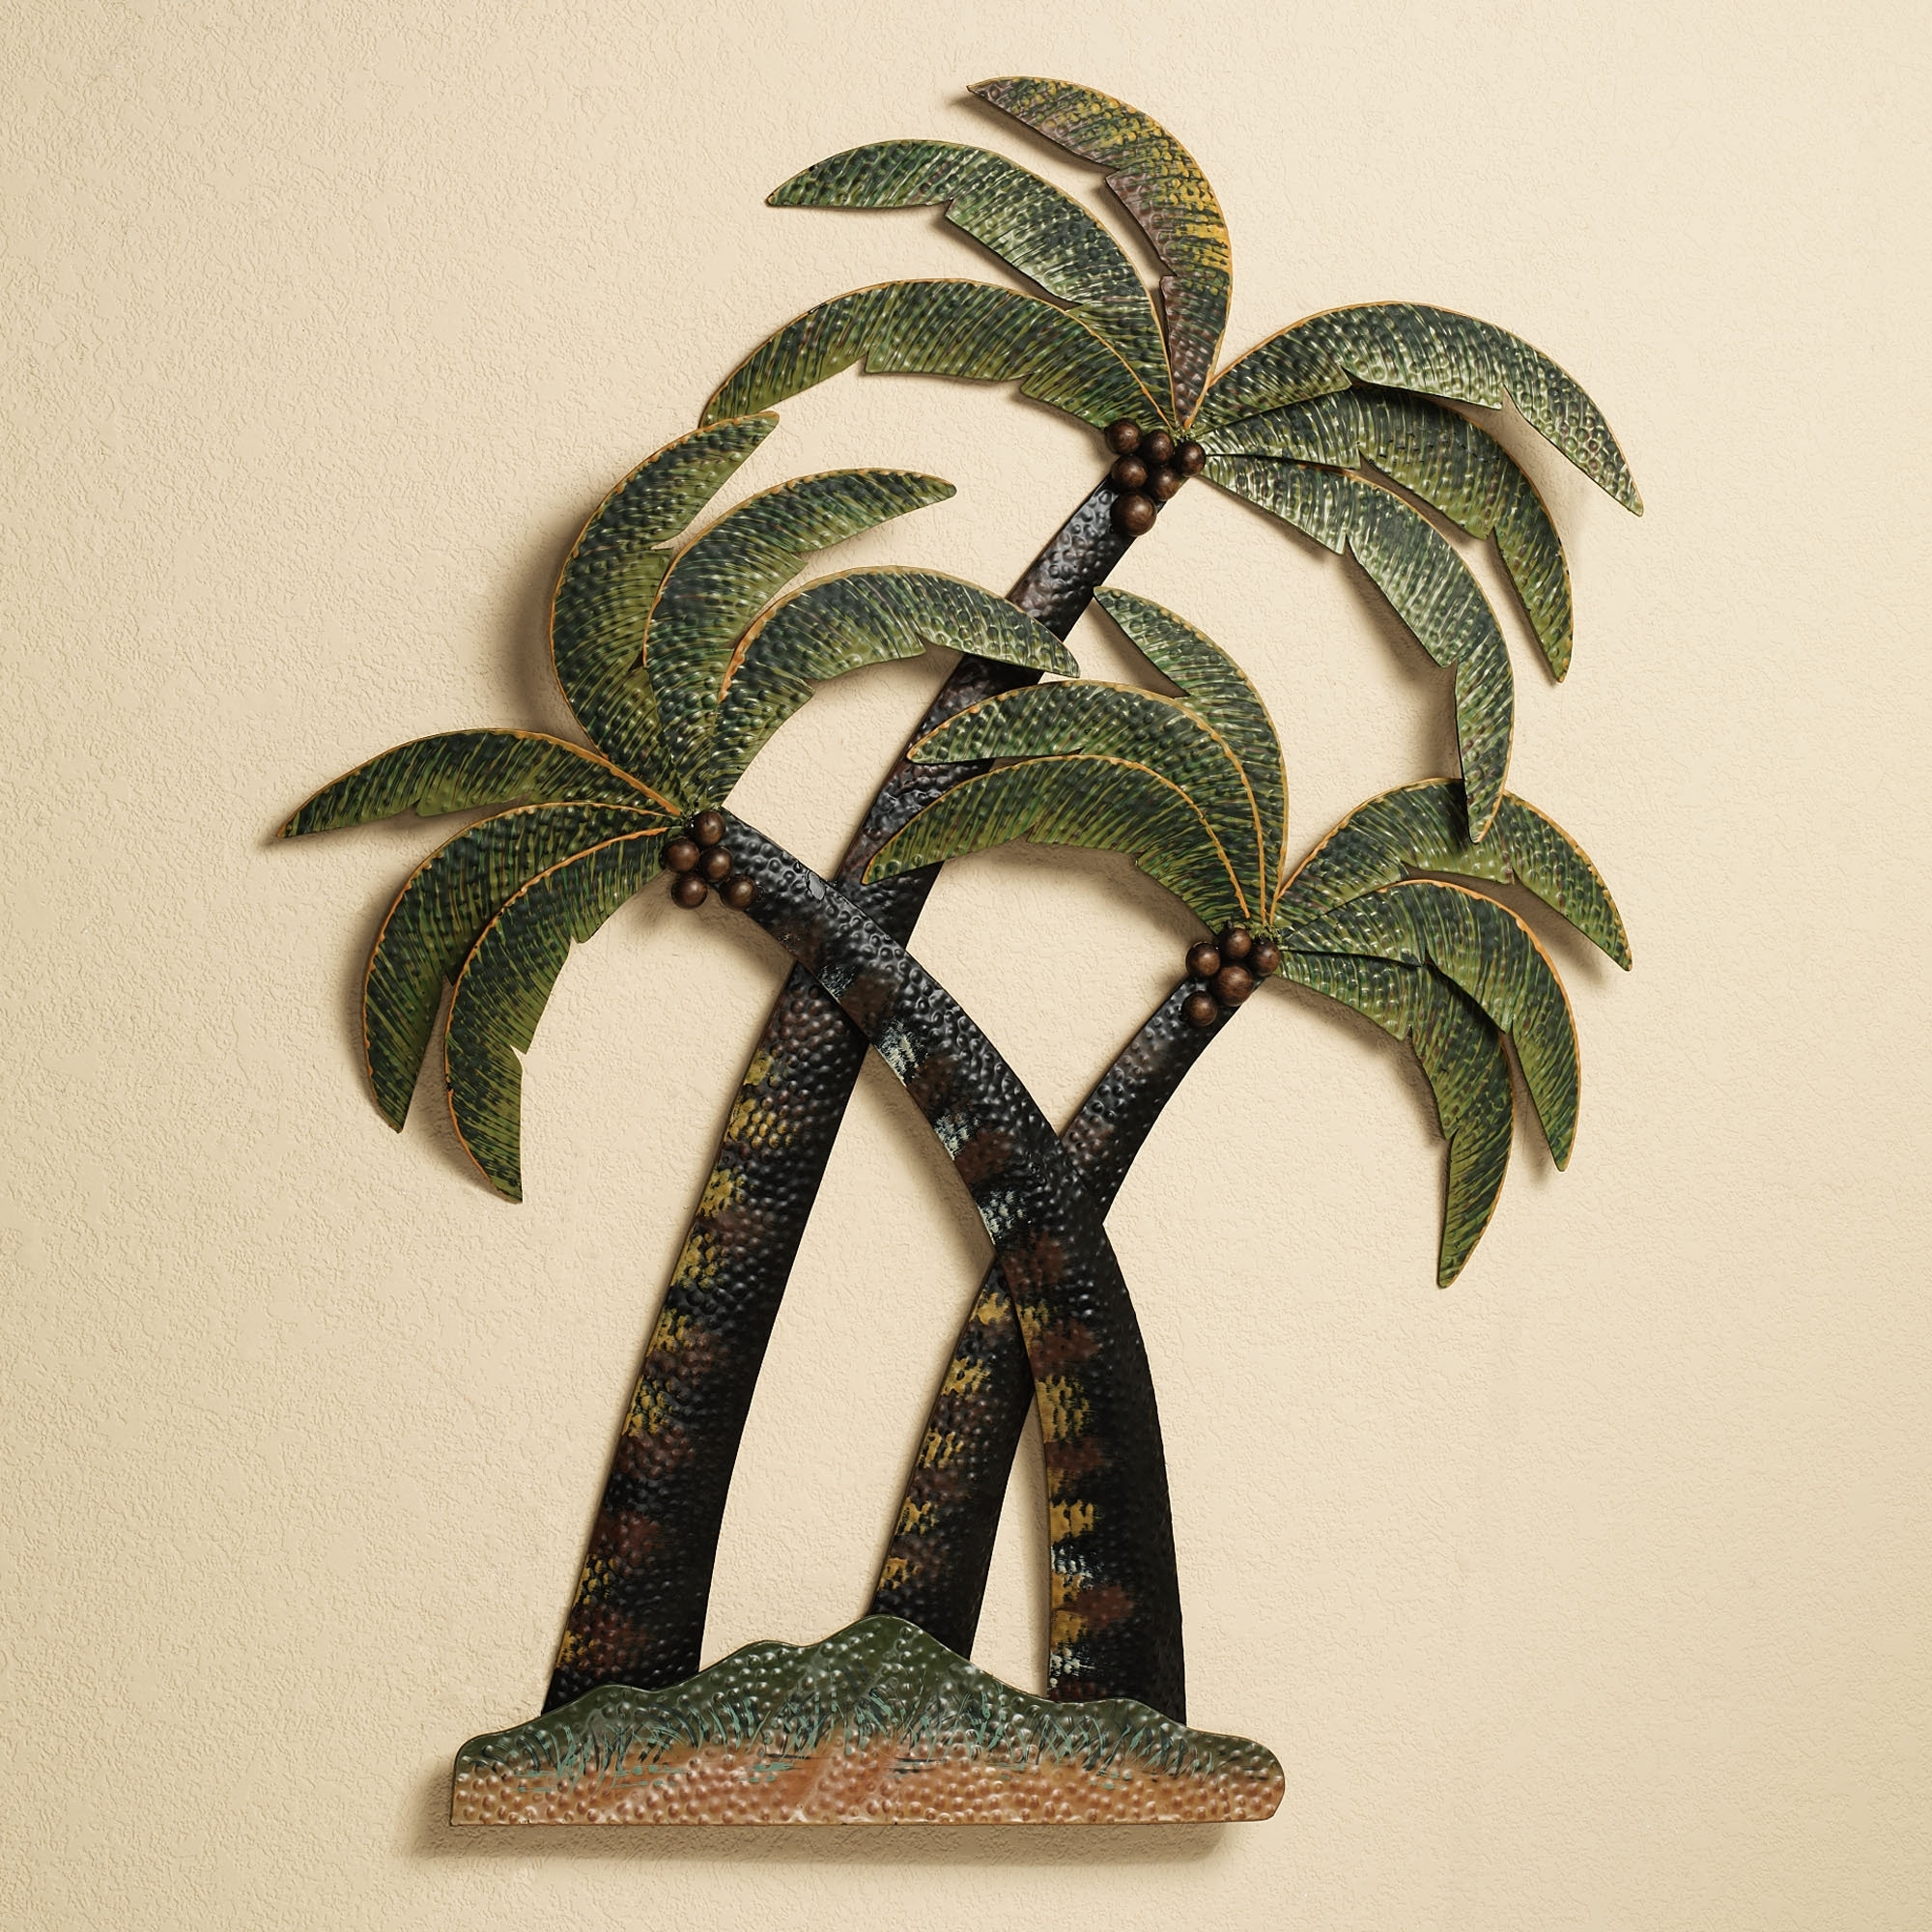 Metal Palm Leaf Wall Decor Lovely Palm Tree Wall Art Metal Sculpture regarding Palm Tree Wall Art (Image 7 of 20)